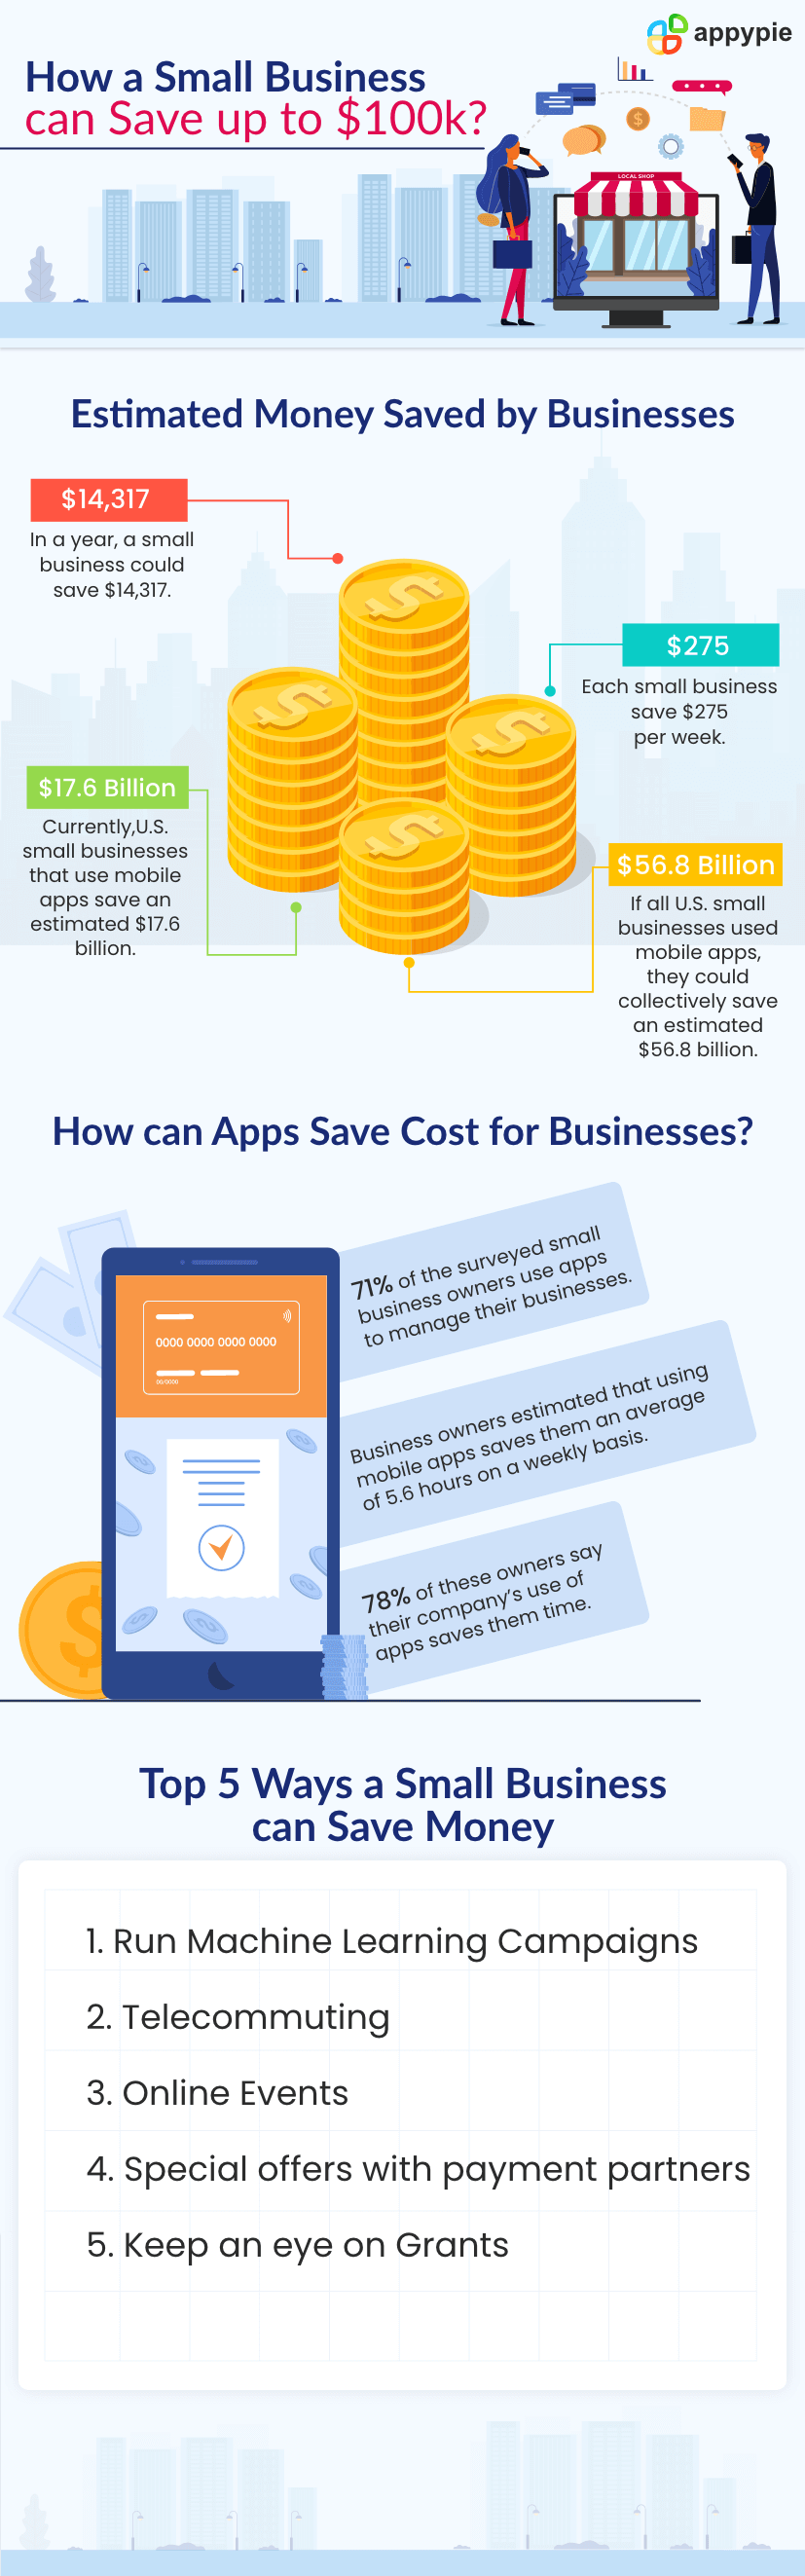 How a small business can save up to $100k?